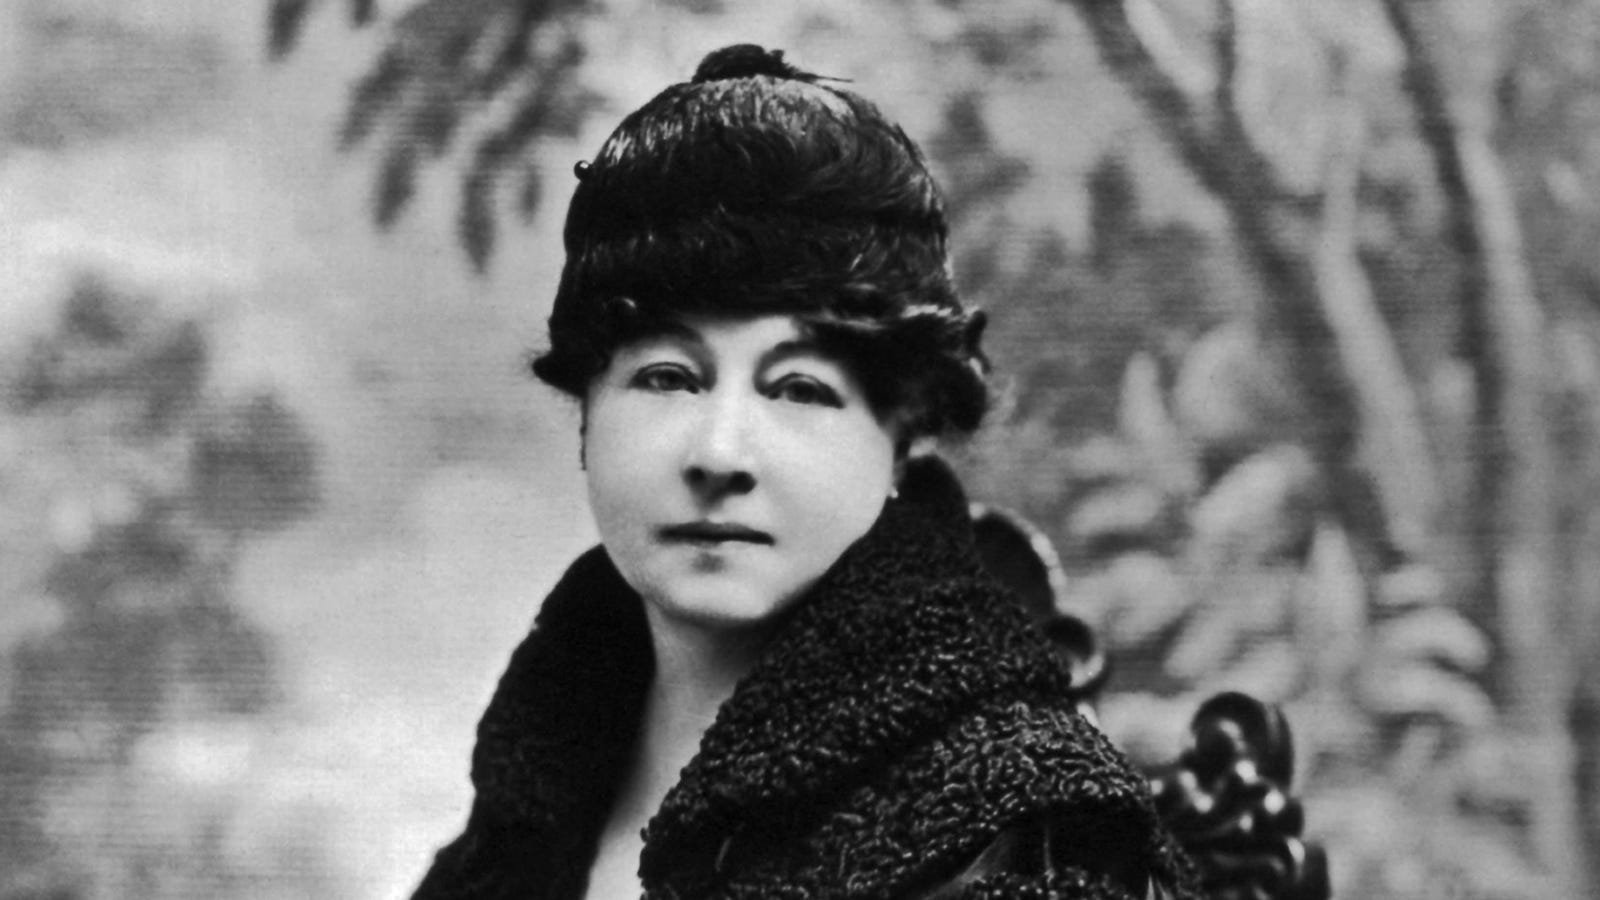 The first female director practically invented narrative film